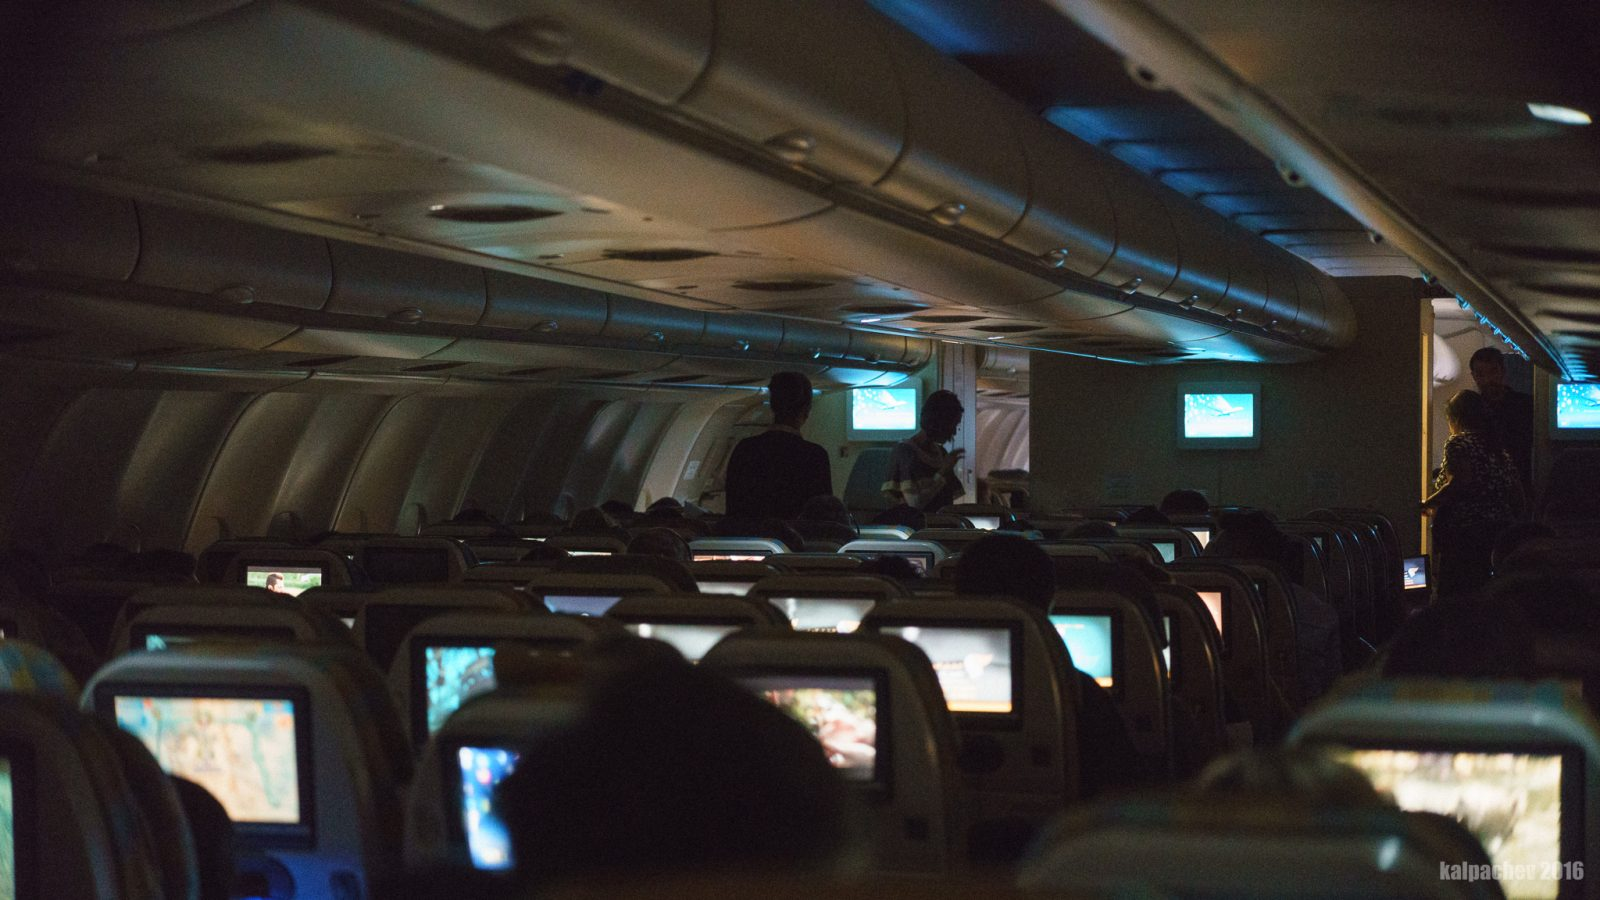 16 Oct 2016 #omanair Airbus A330-300 flight to Muscat